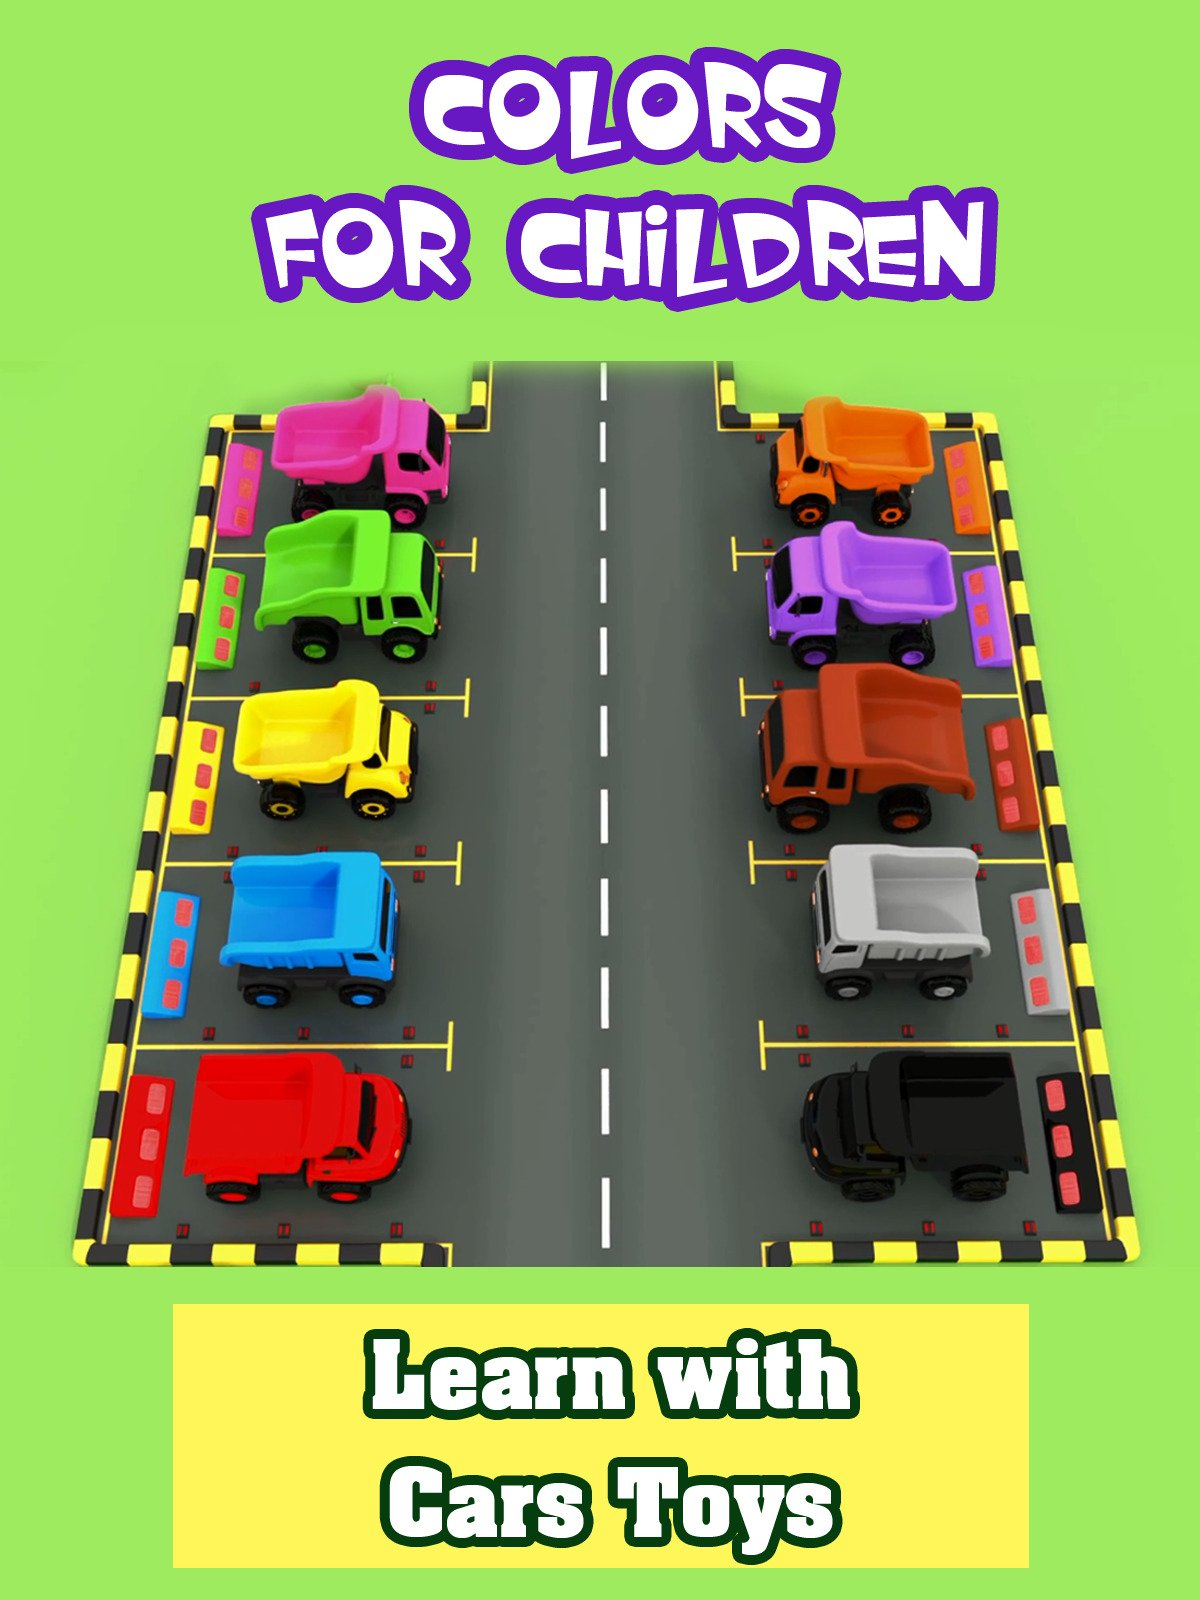 Colors for Children to Learn with Cars Toys